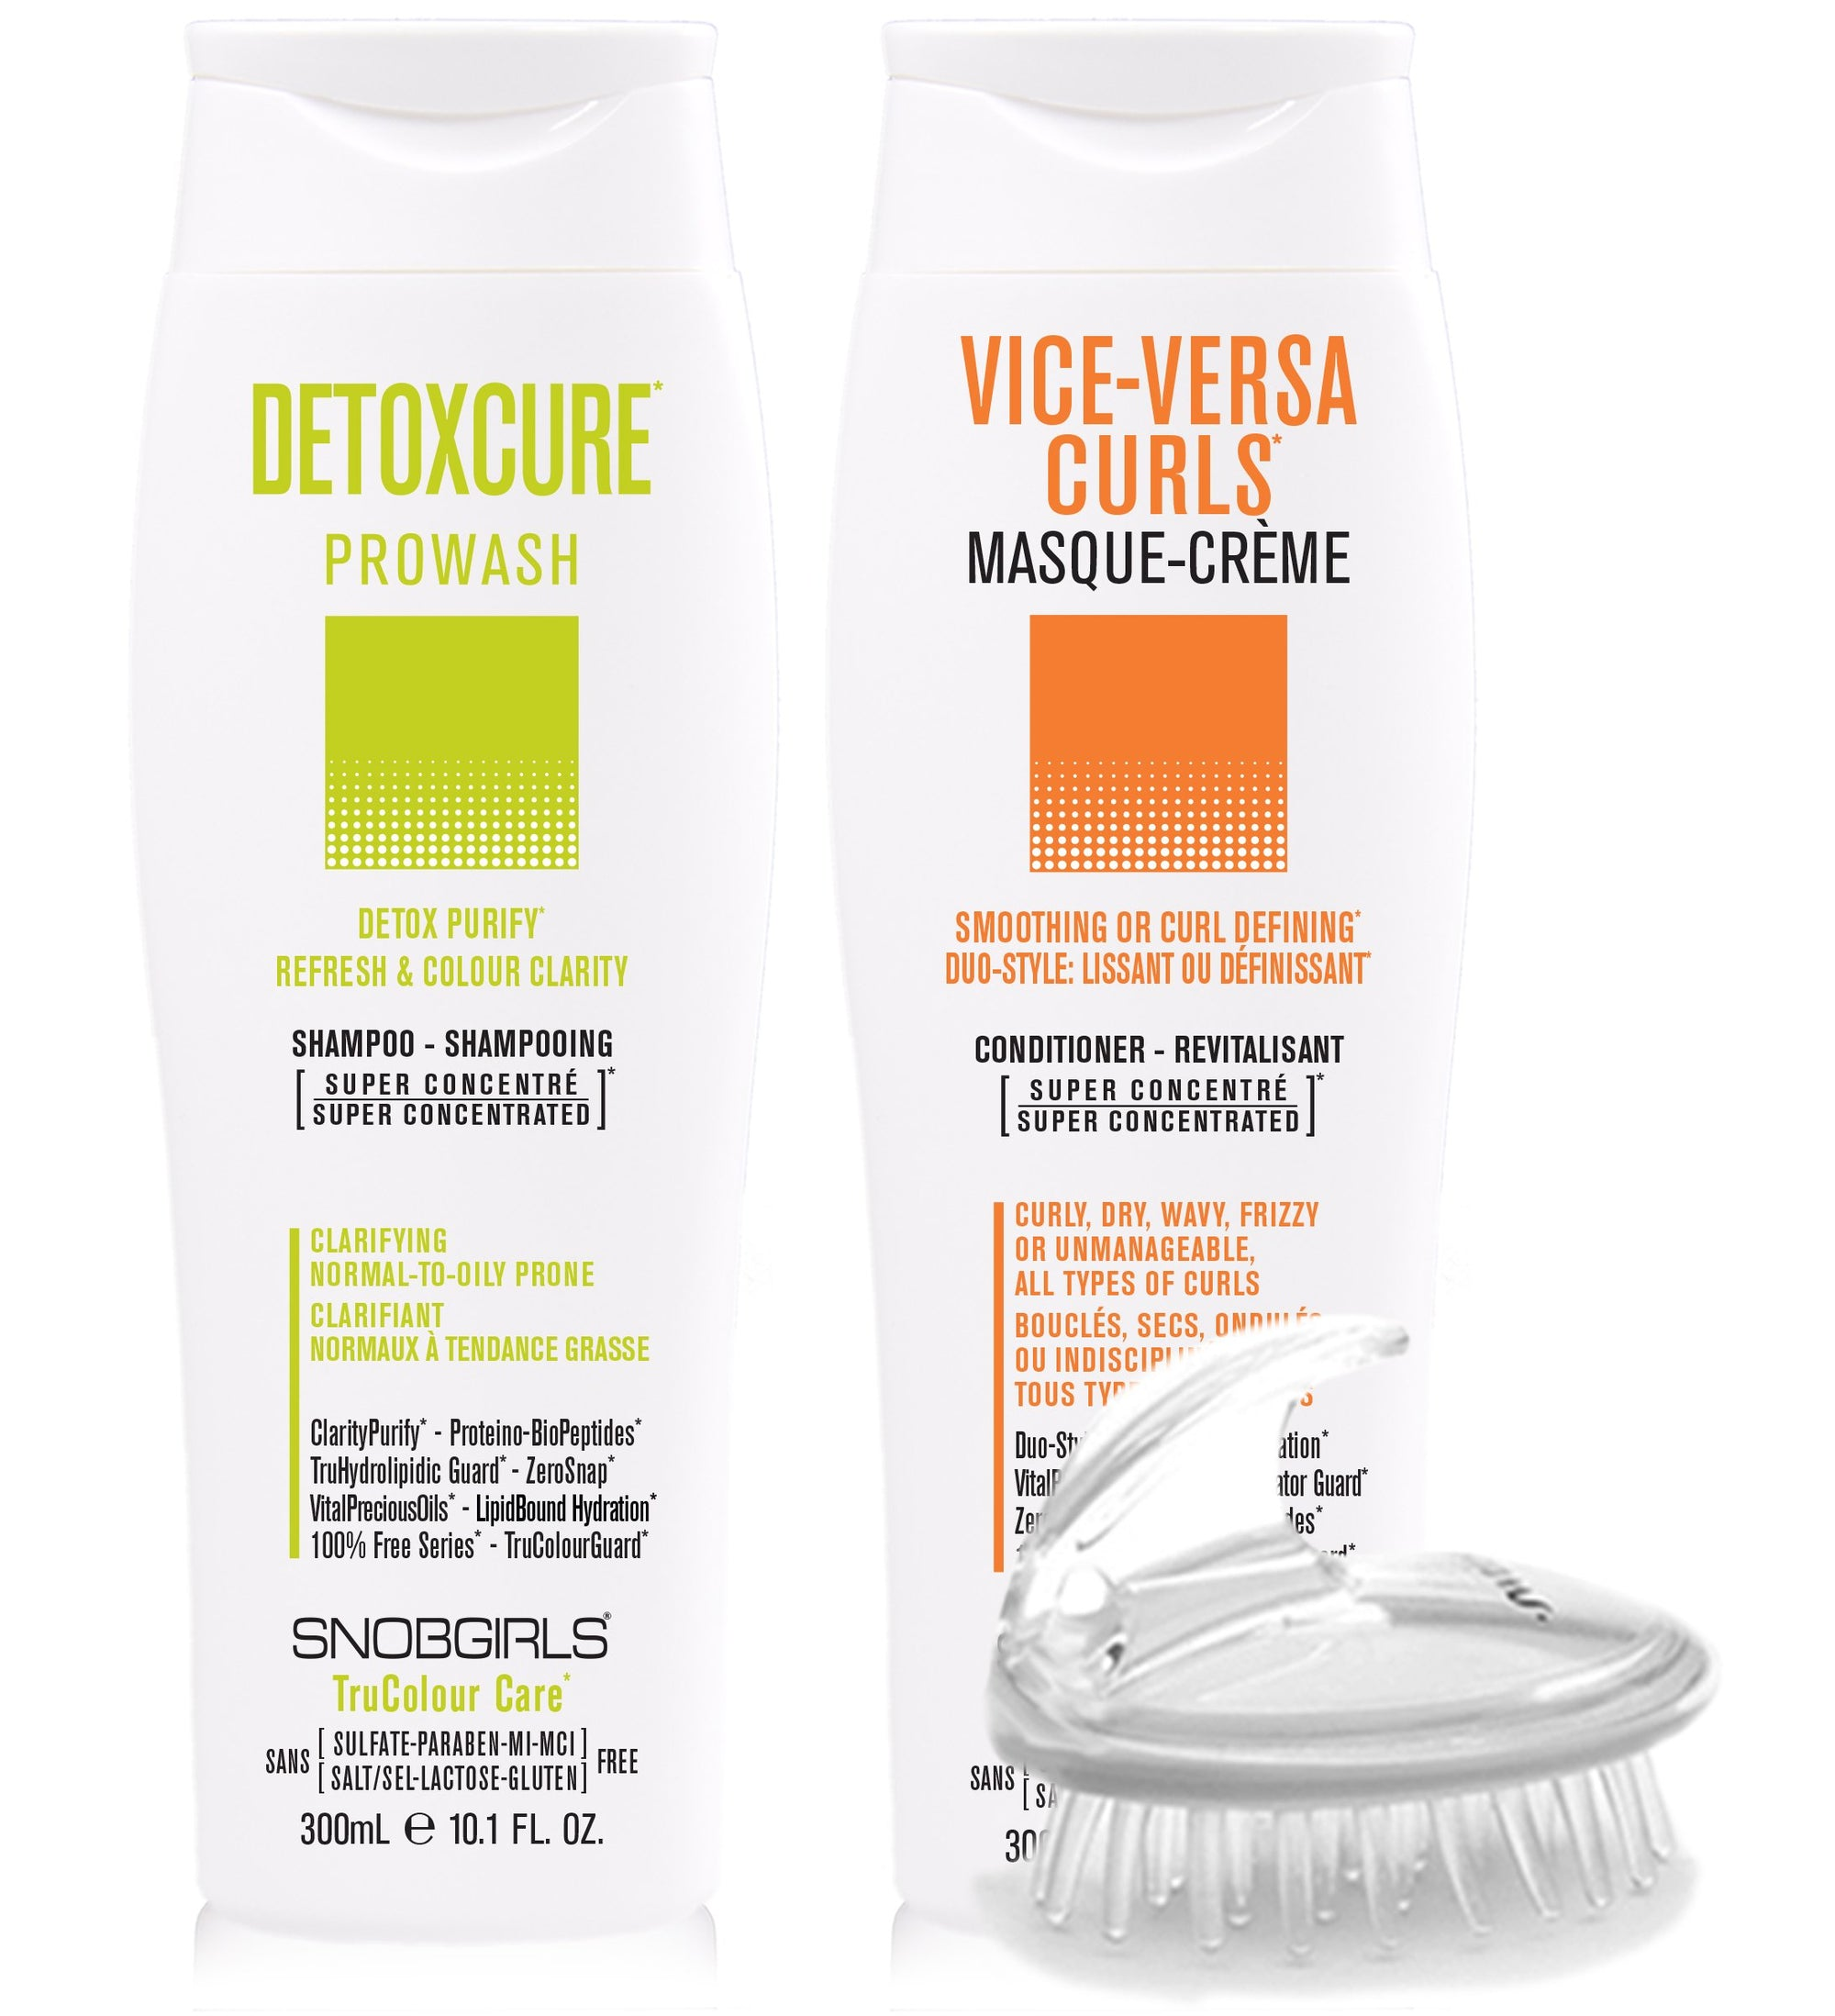 DUO DETOXCURE Prowash + VICE-VERSA CURLS Masque-Creme 300 mL + Shampoo Brush - SNOBGIRLS Canada